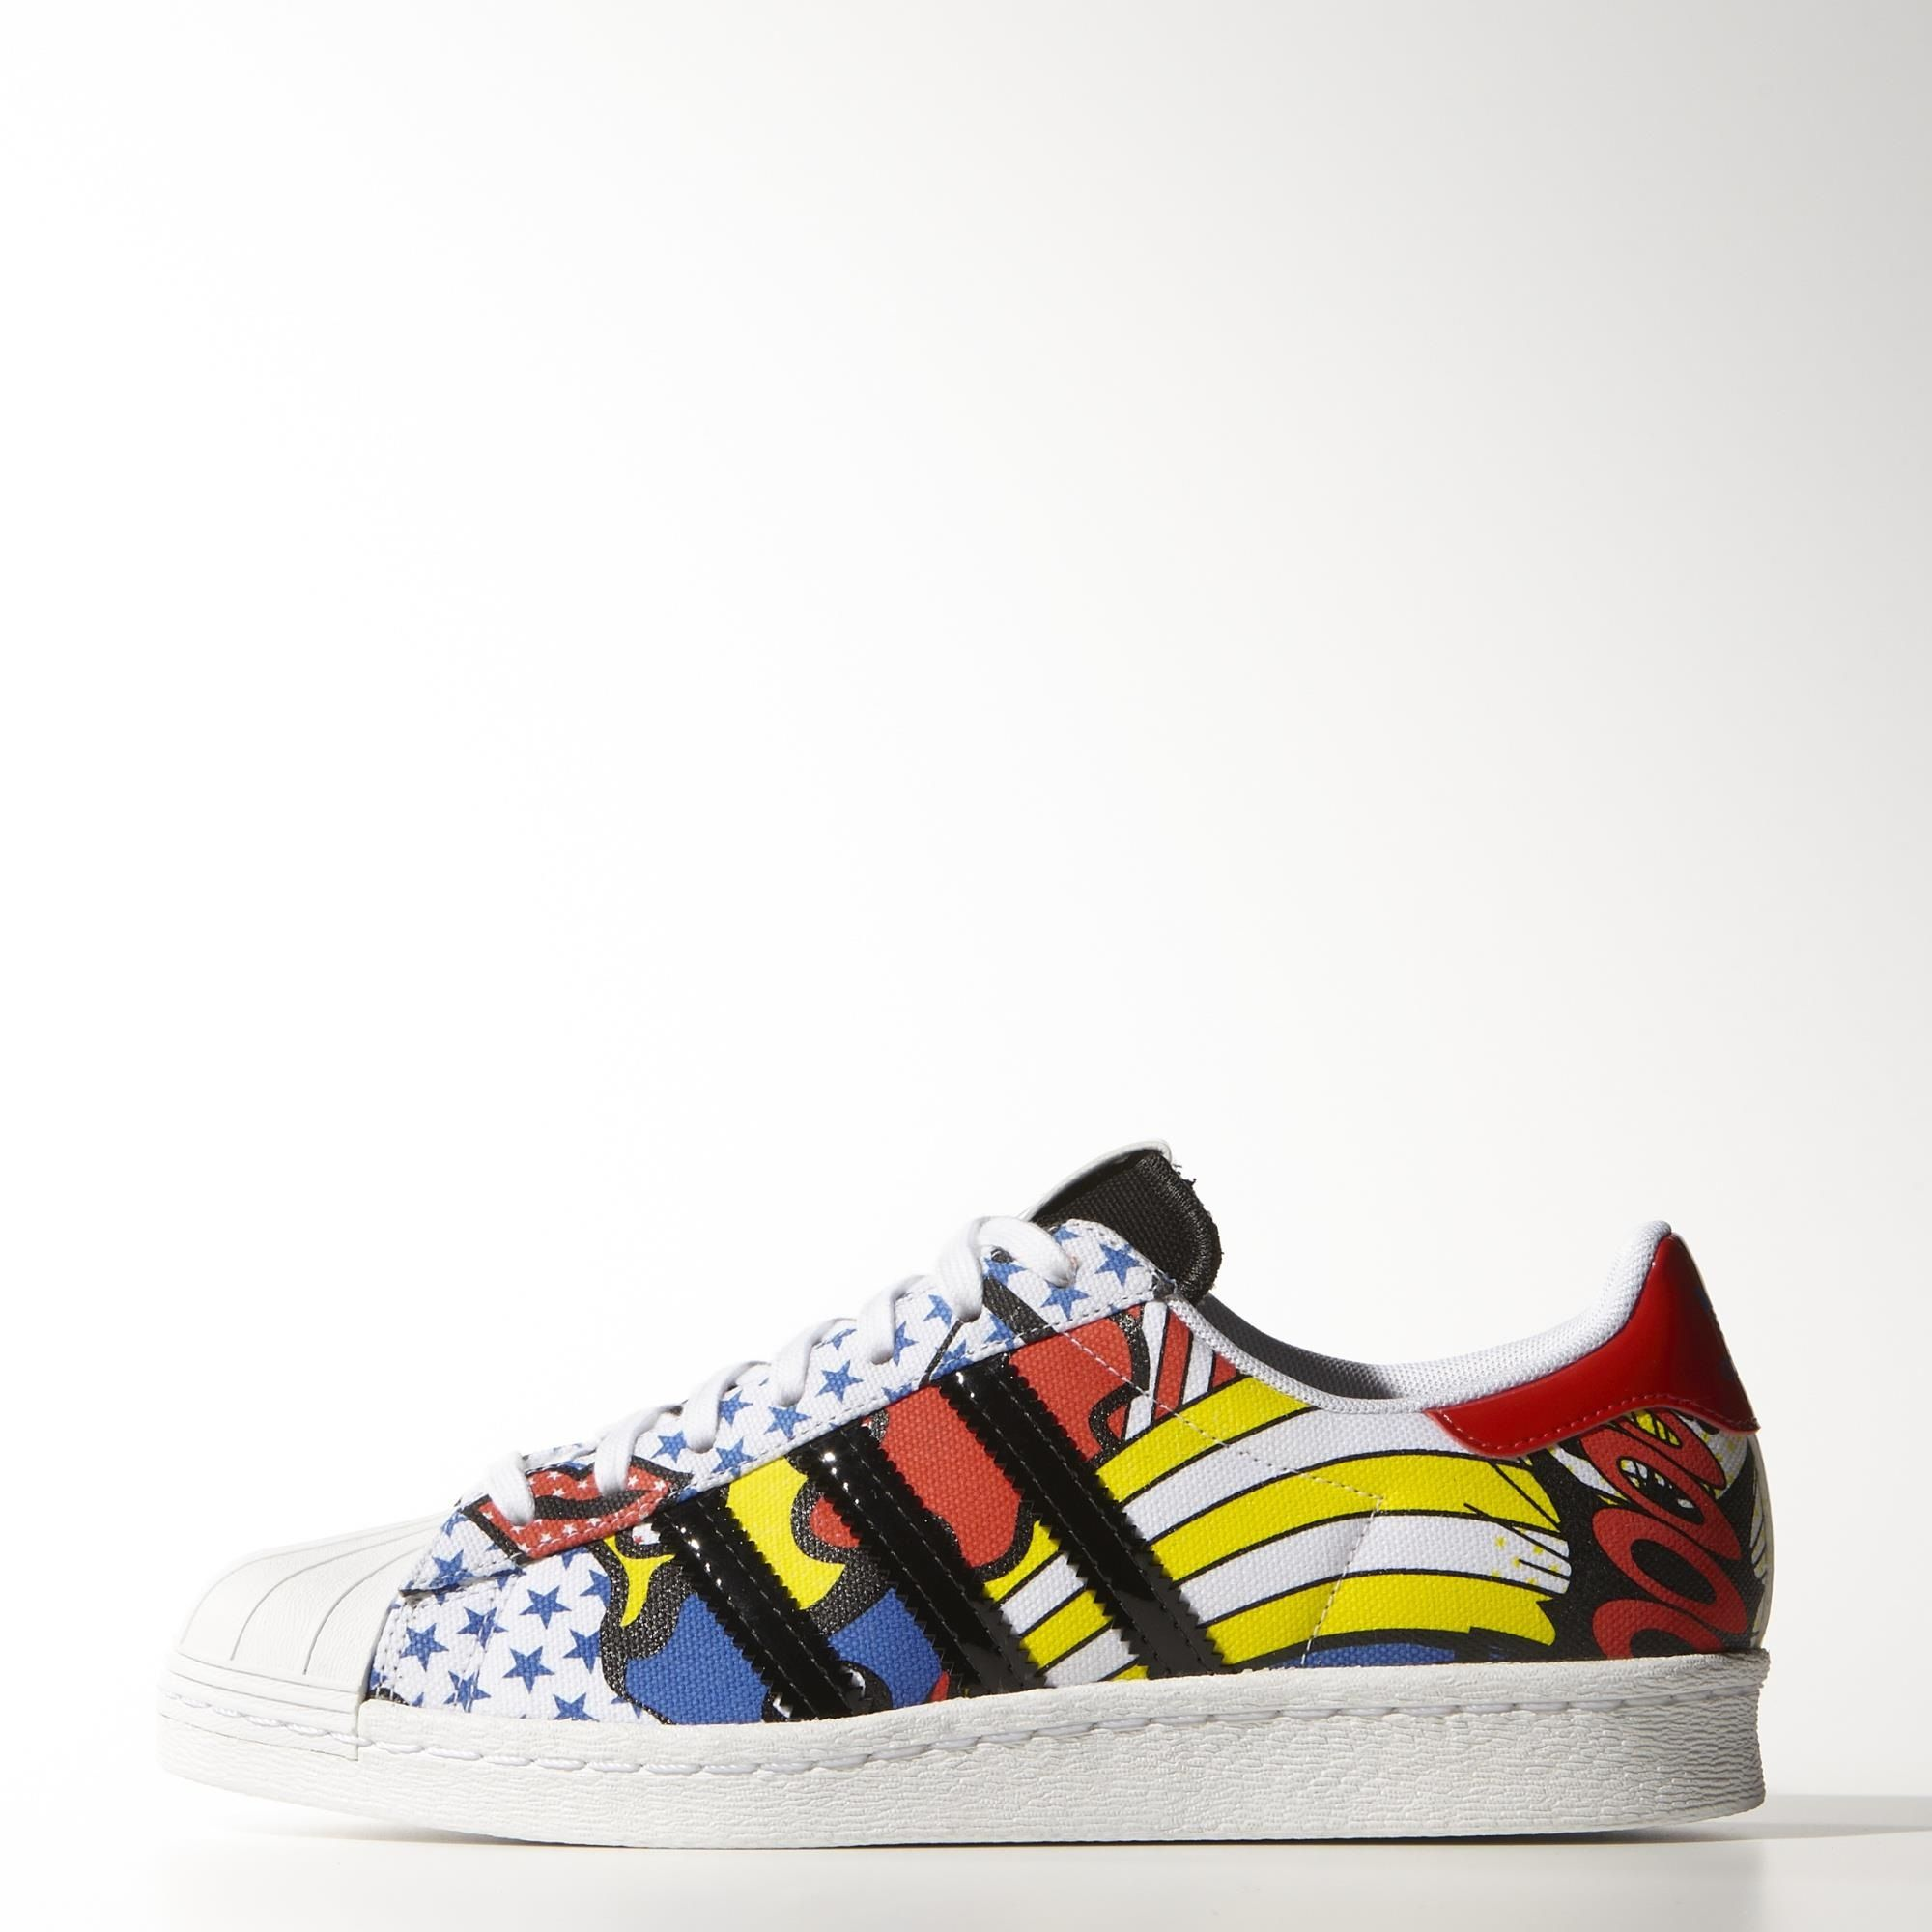 A design collaboration with the British pop star and style icon, these Rita  Ora for adidas Originals Superstar 80s shoes pop off the page with bright  colors ... ec699c628ade